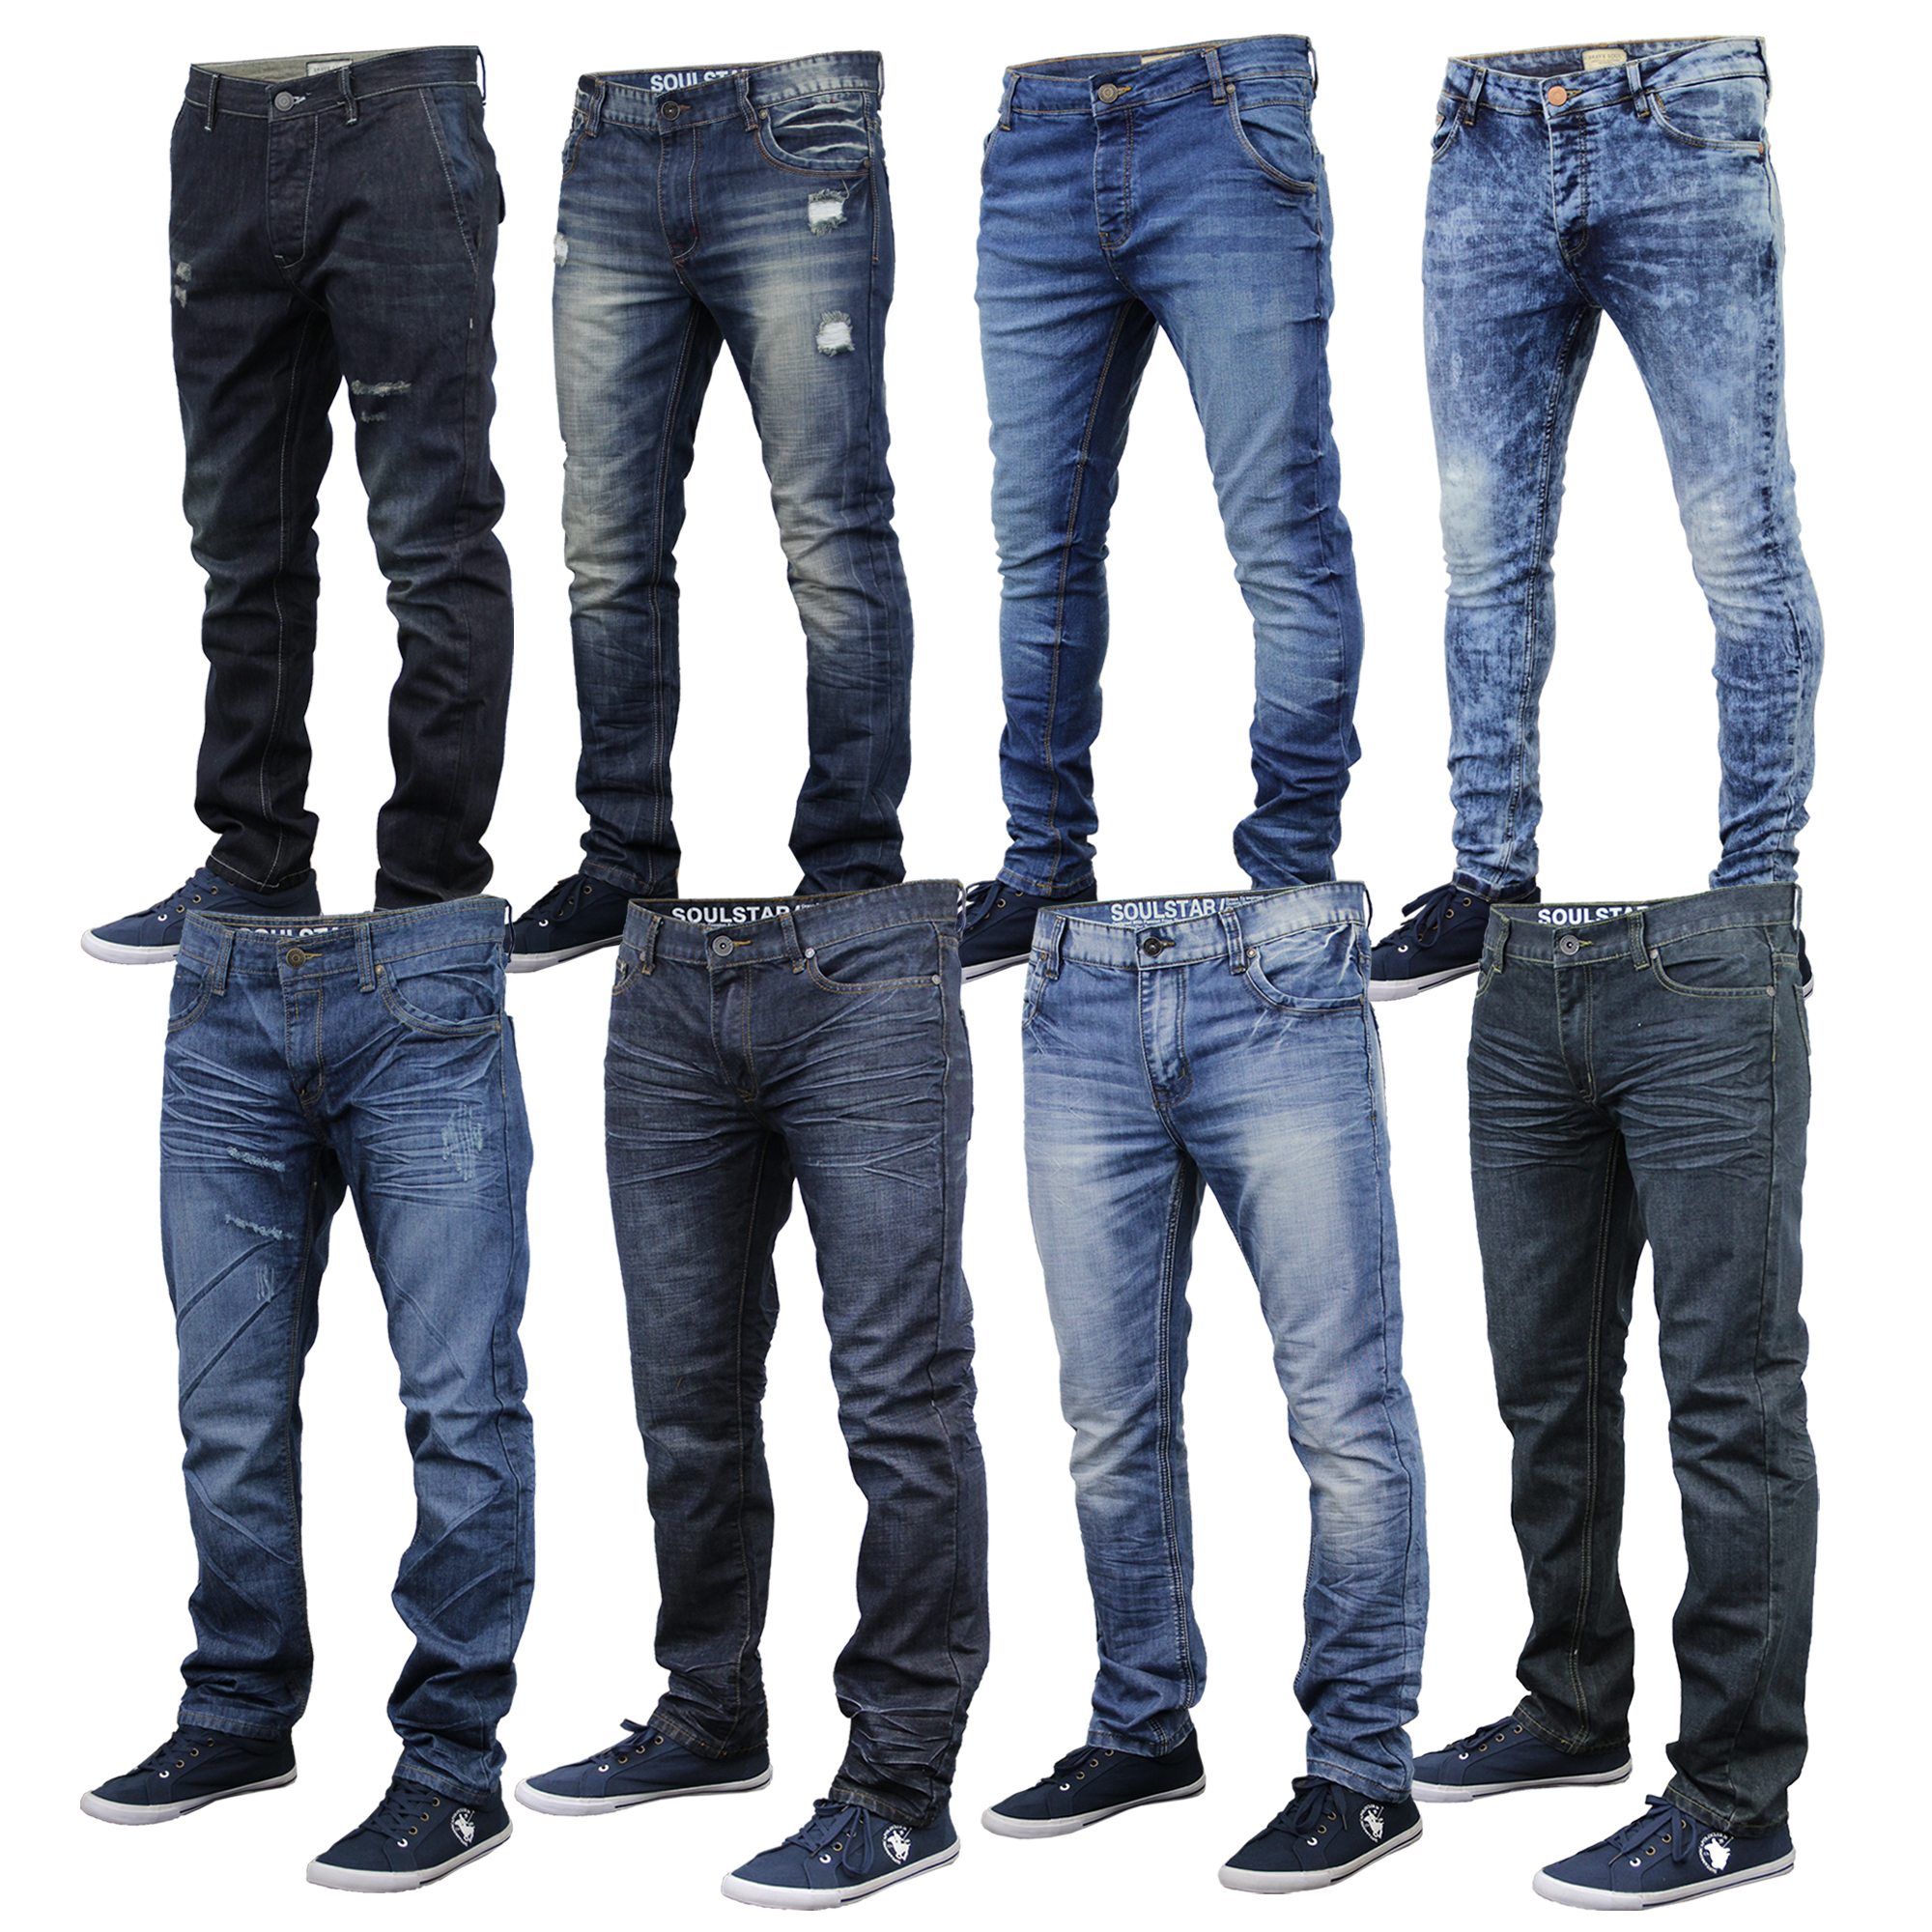 FREE SHIPPING AVAILABLE! Shop sisk-profi.ga and save on Slim Fit Jeans.